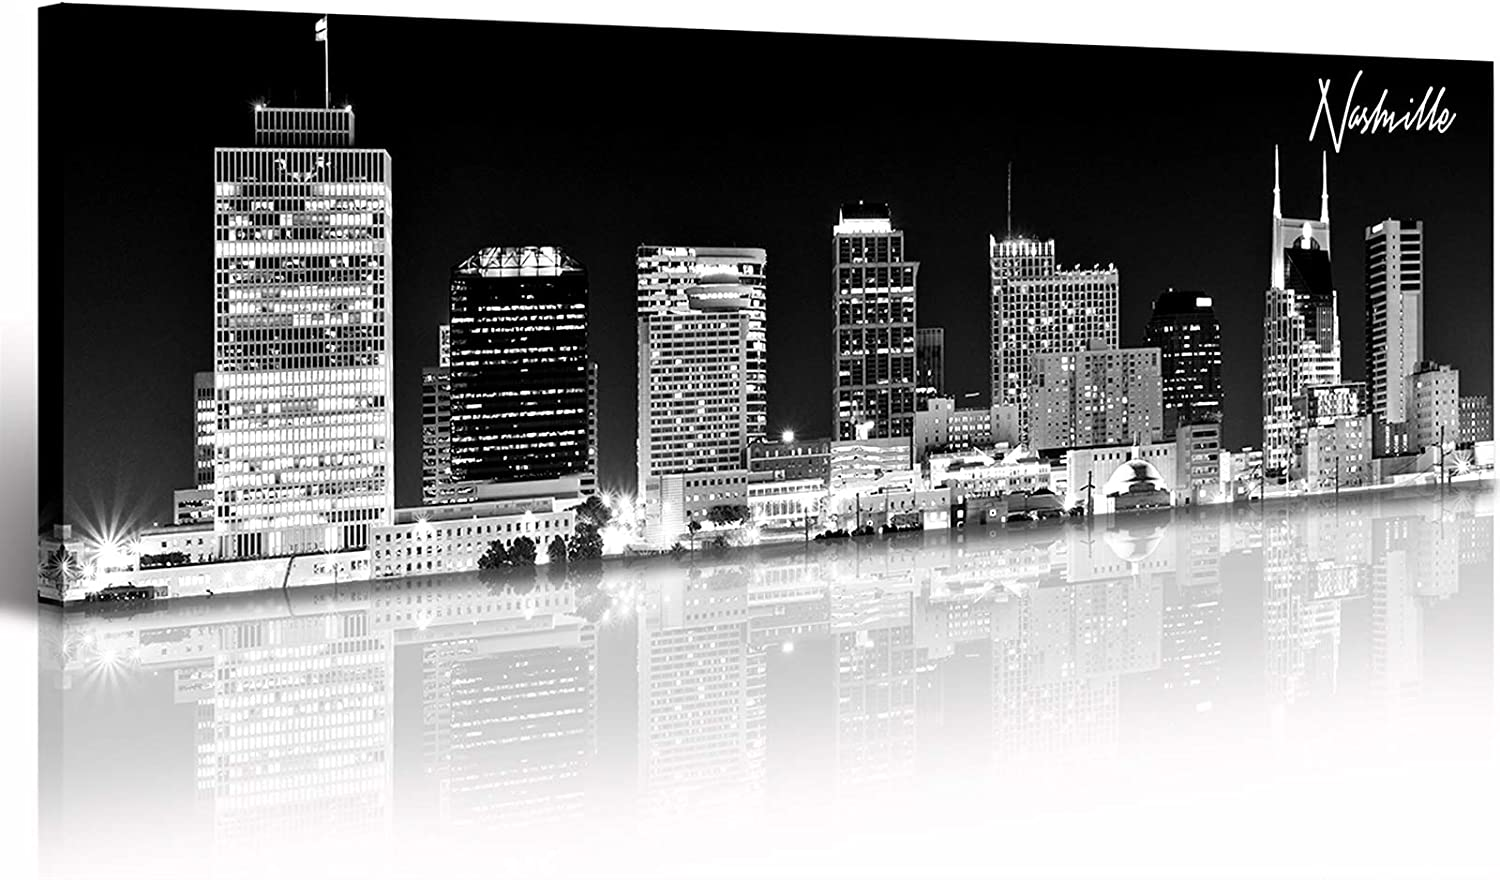 Wall Decor Nashville Skyline Panoramic City Landscape Picture Canvas Art B & W Paintings for Living Room Bedroom Artwork Modern Skyscraper Poster Giclee Print Framed Home Decorations 13.8